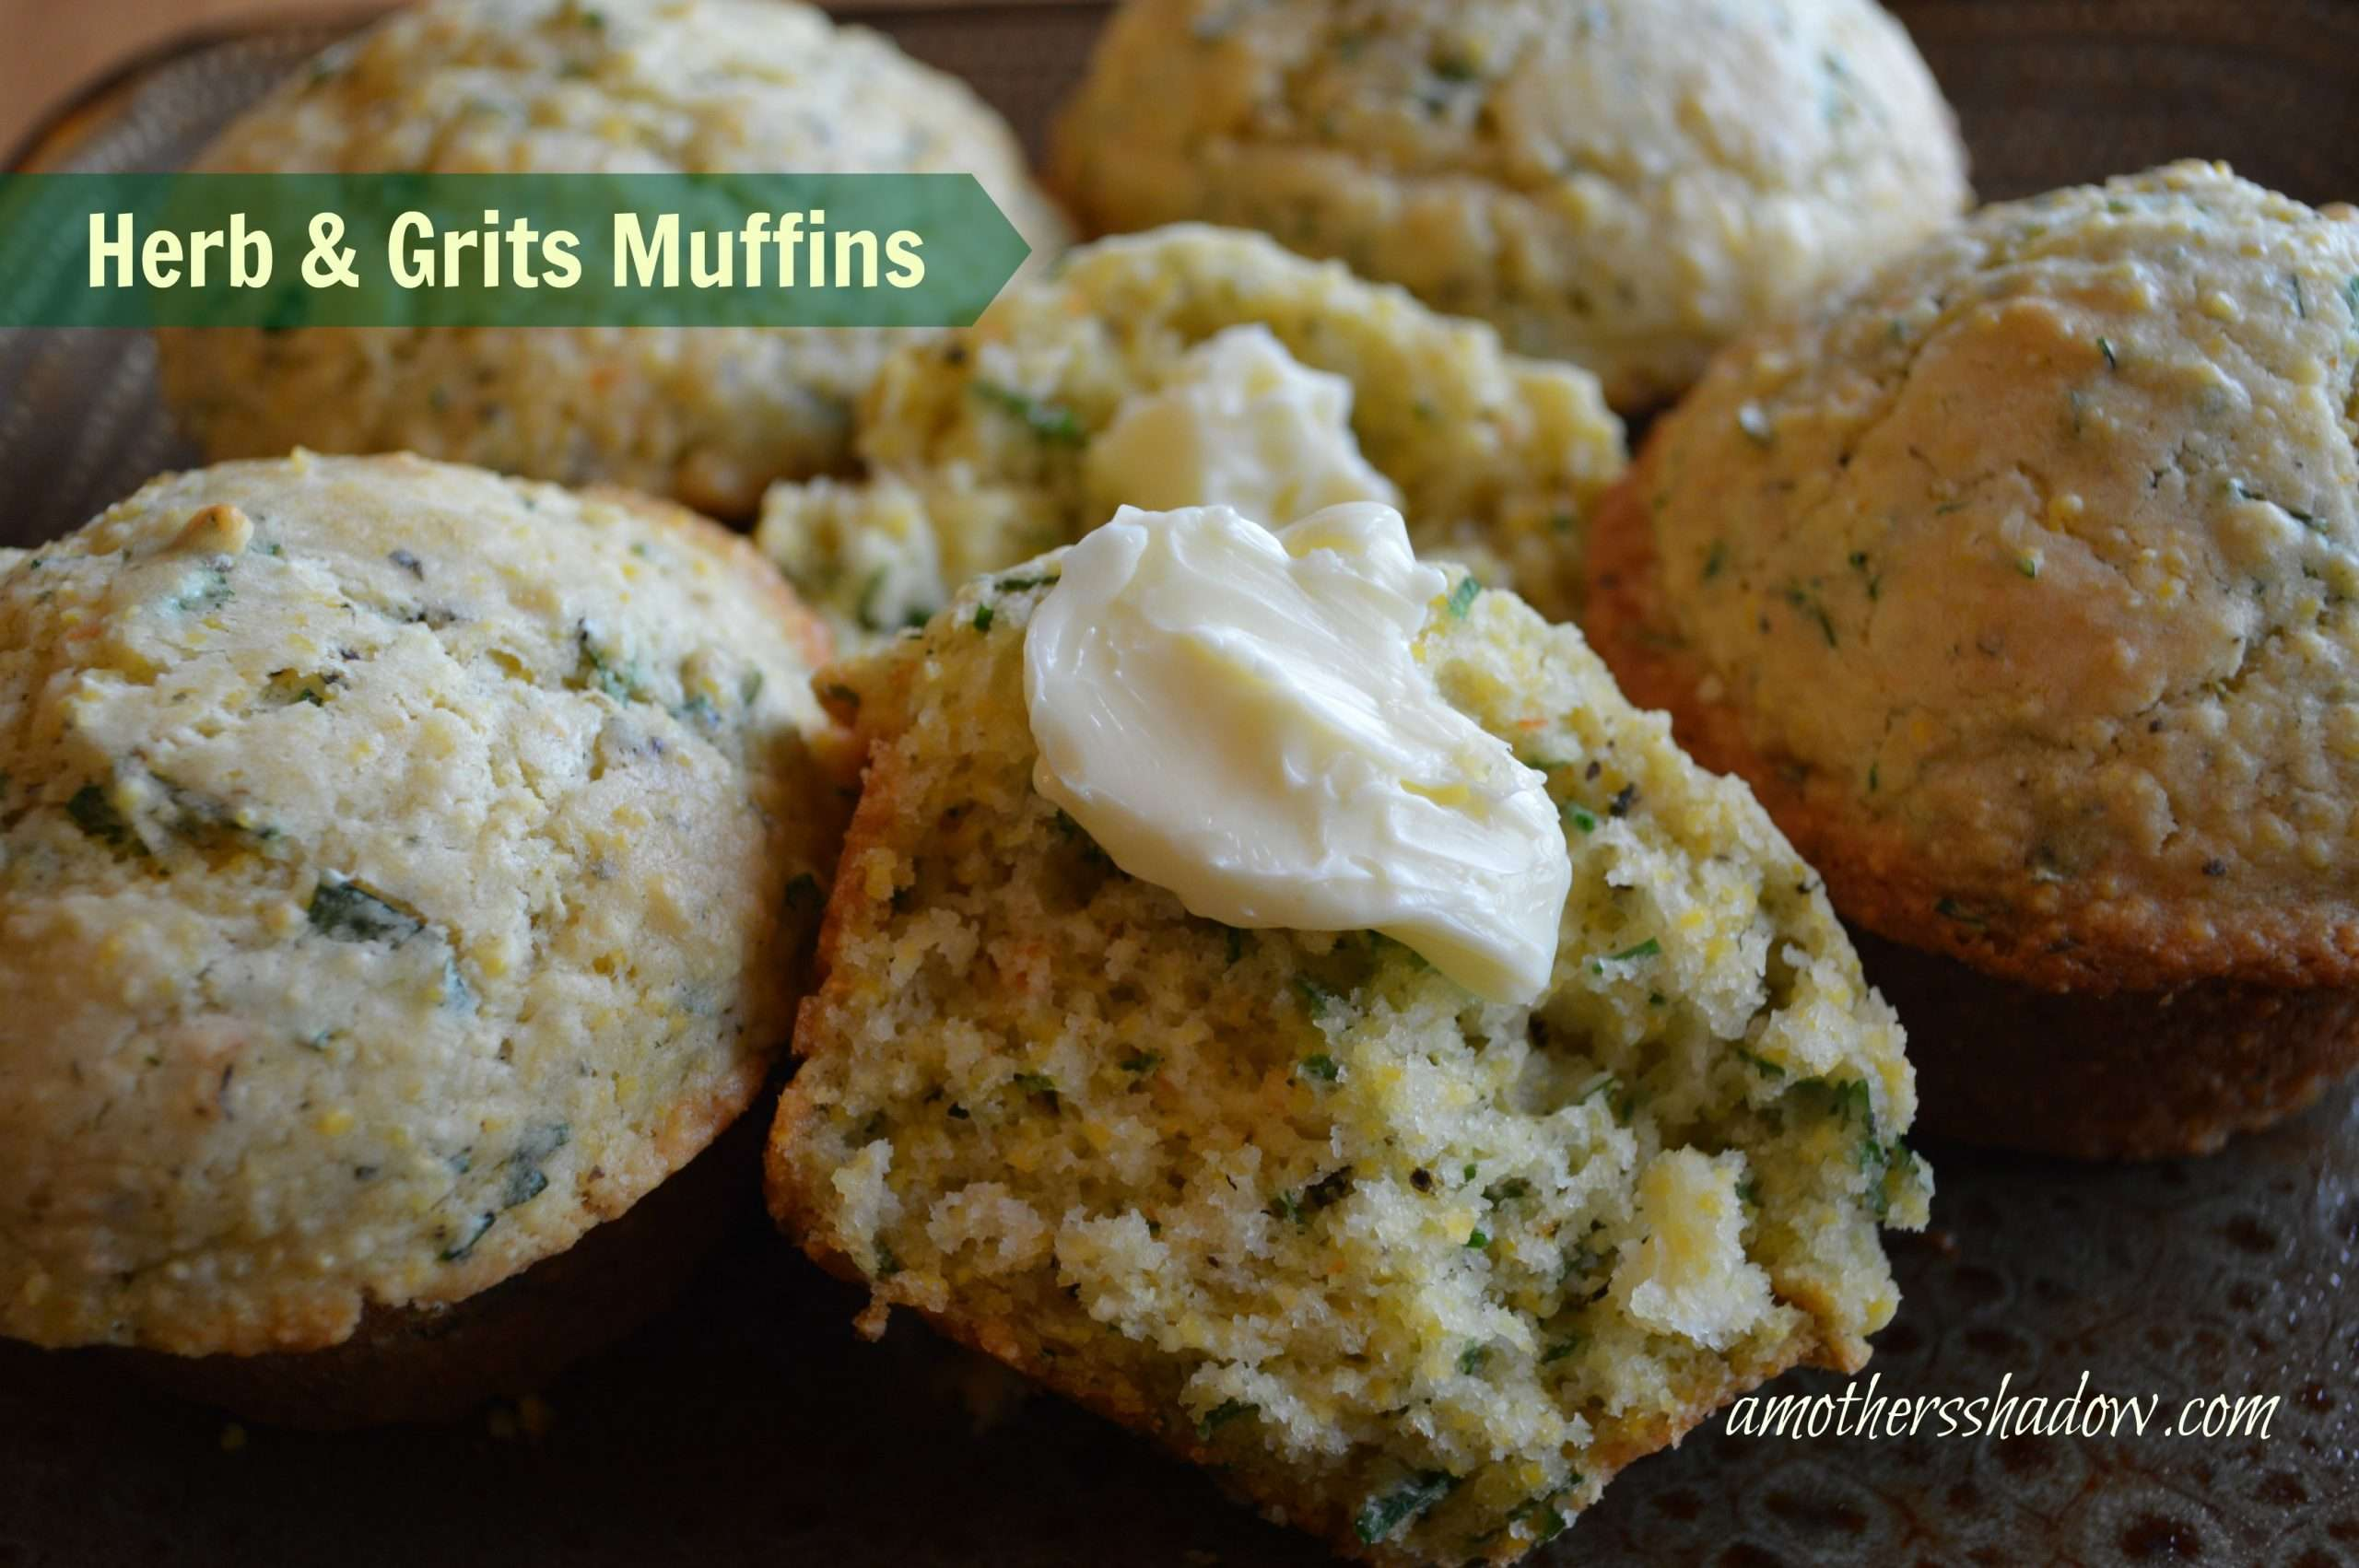 Savory Herb and Grits Muffins